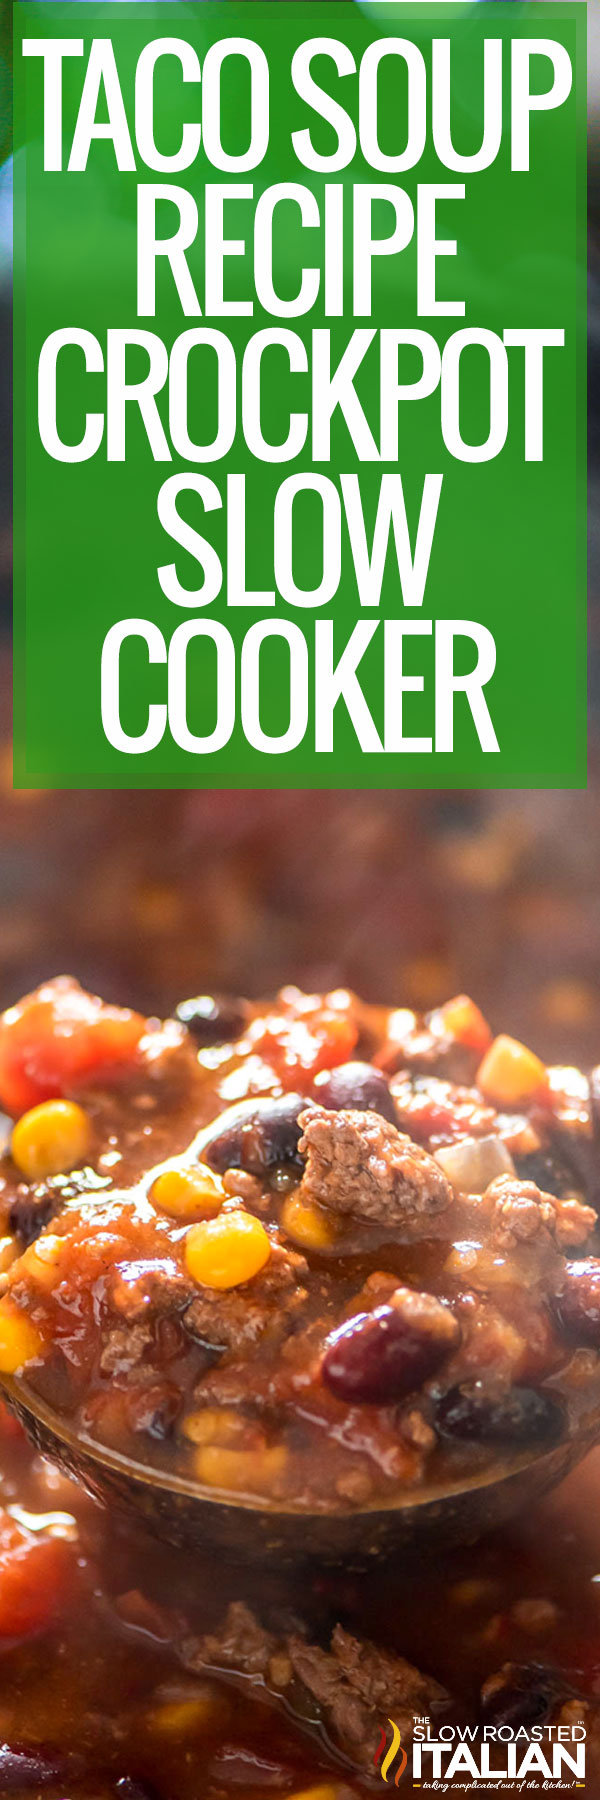 title text: taco soup recipe (crockpot / slow cooker)